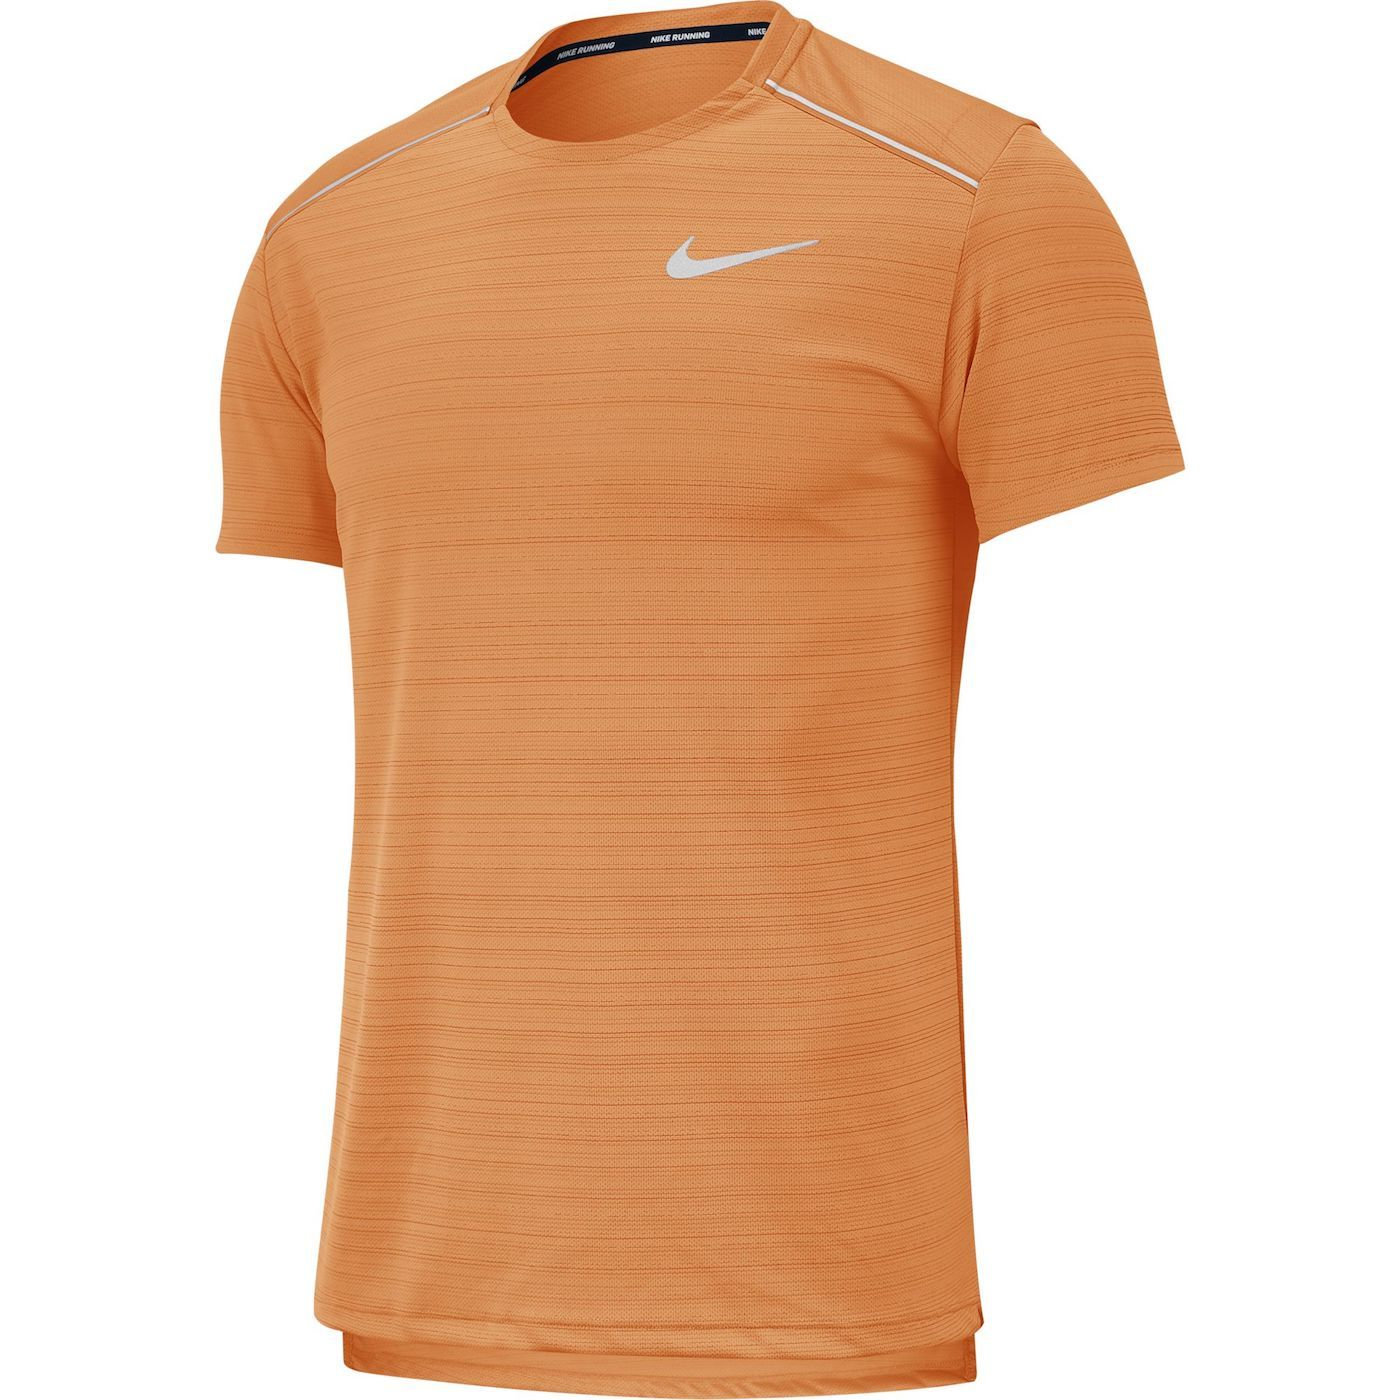 Men's Dry Miler Top SS (806-alpha orange/reflective silver)